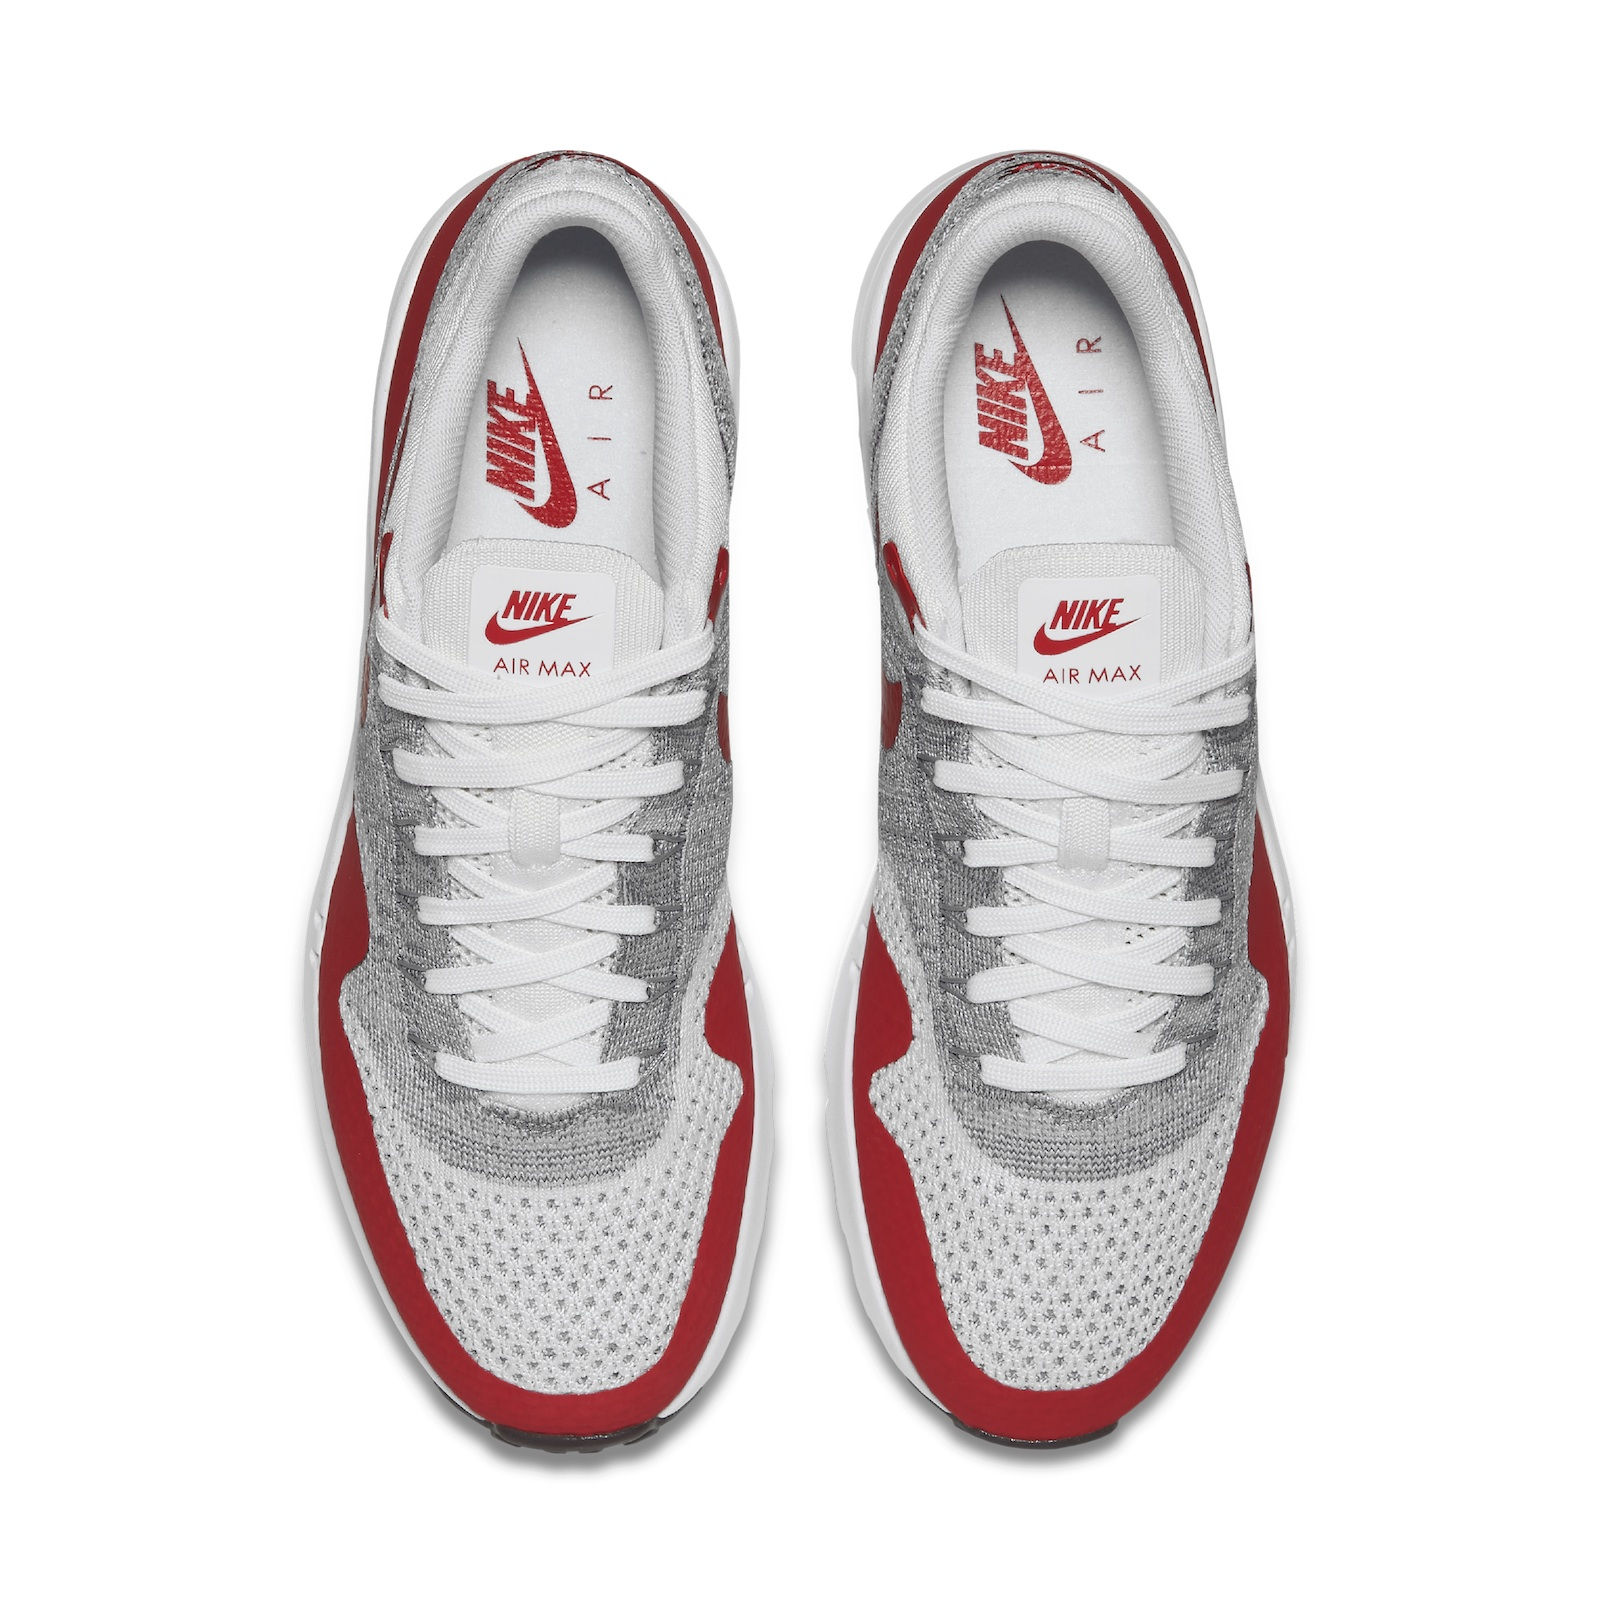 best website e330a 116b4 The Nike Air Max 1 Ultra Flyknit will be available in men s and women s  sizes and colourways from Thursday 28 July  16 onwards at all Nike retail  outlets.